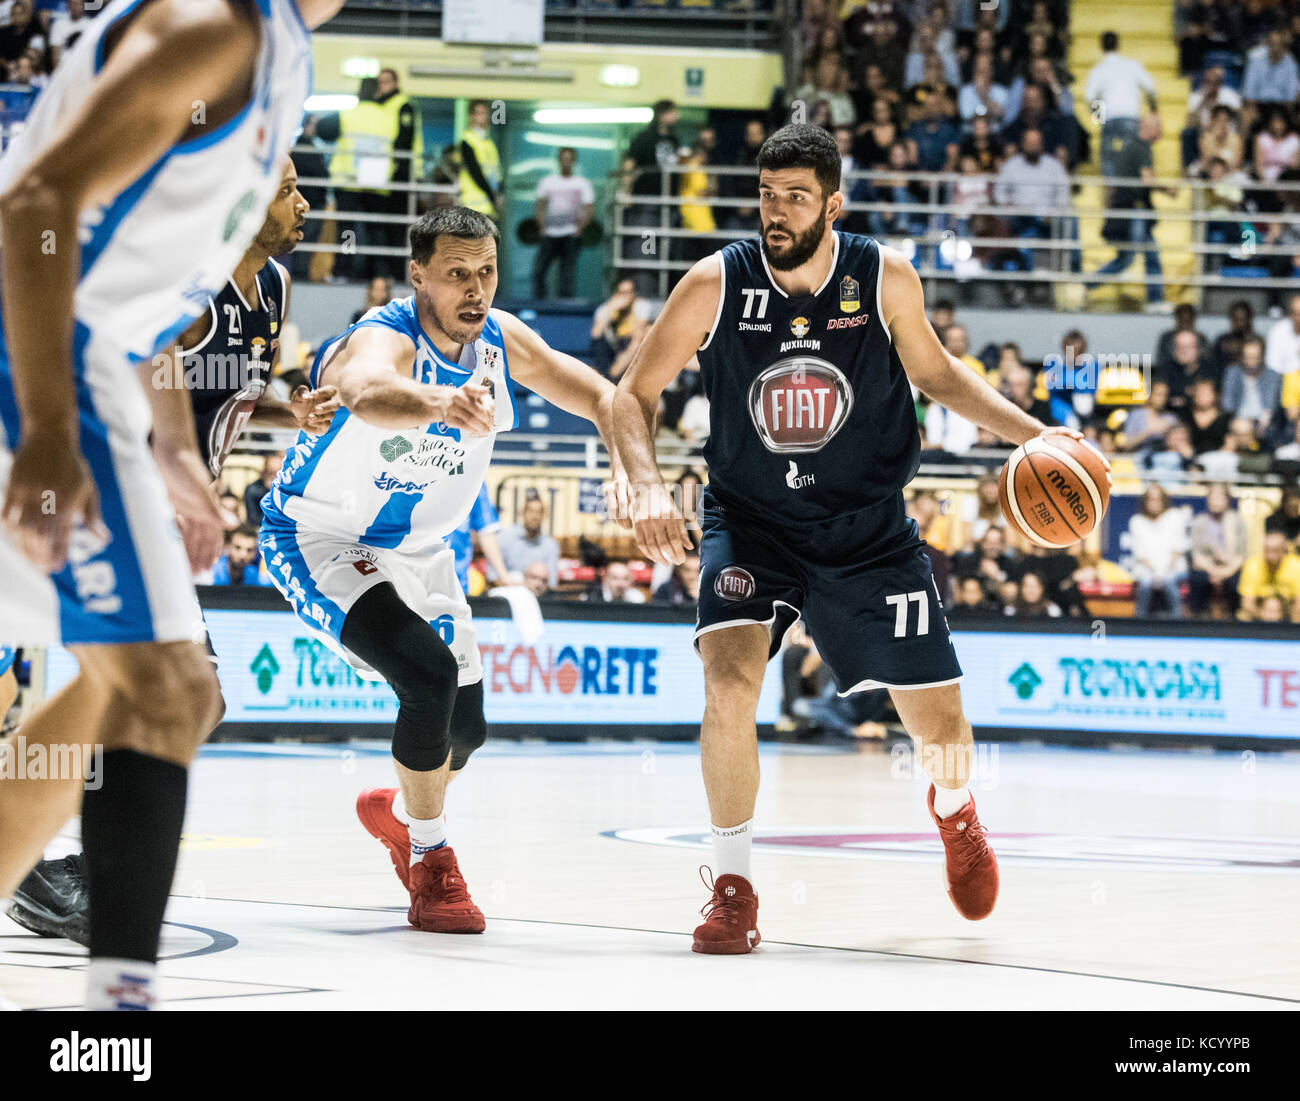 Turin, Italy. 07th Oct, 2017. Antonio Iannuzzi Turin, Italy 7th october 2017. Serie A an Basketball match Fiat Torino Stock Photo